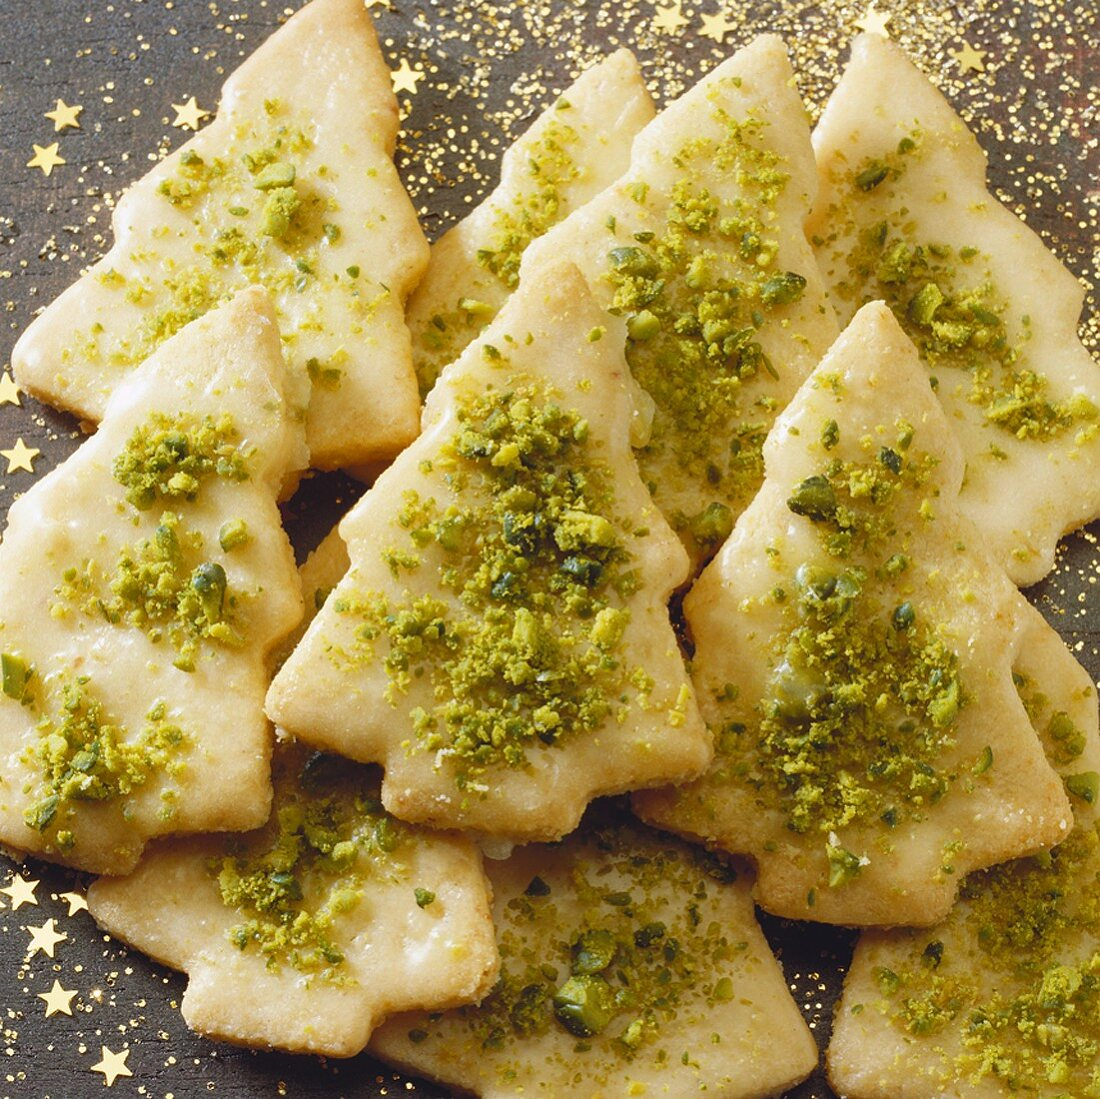 Christmas tree-shaped biscuits (sweet pastry)